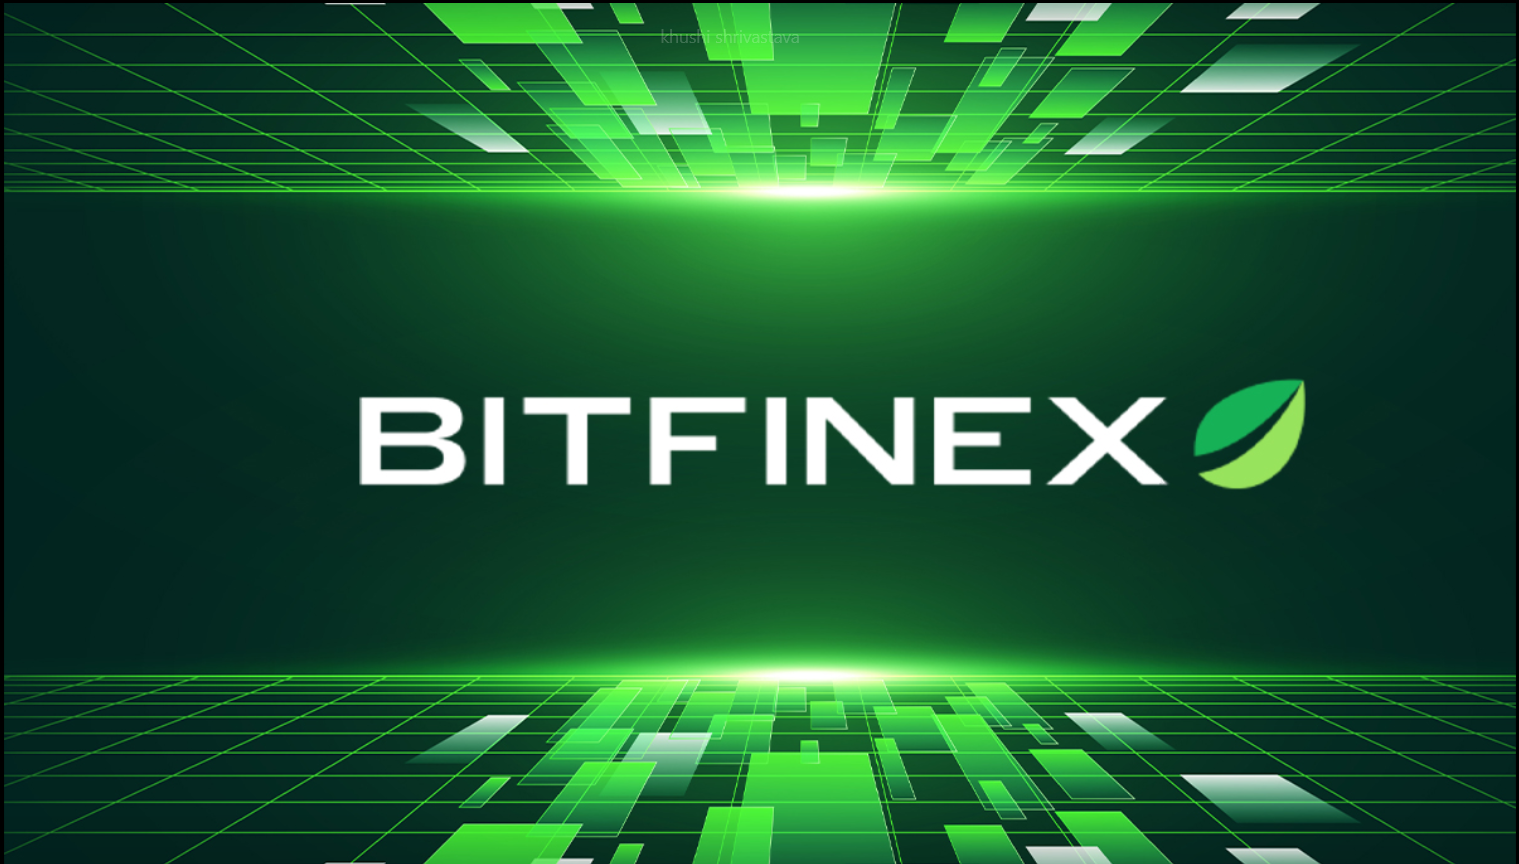 Bitfinex and Tether Reach Settlement With New York Attorney General's Office - TCR